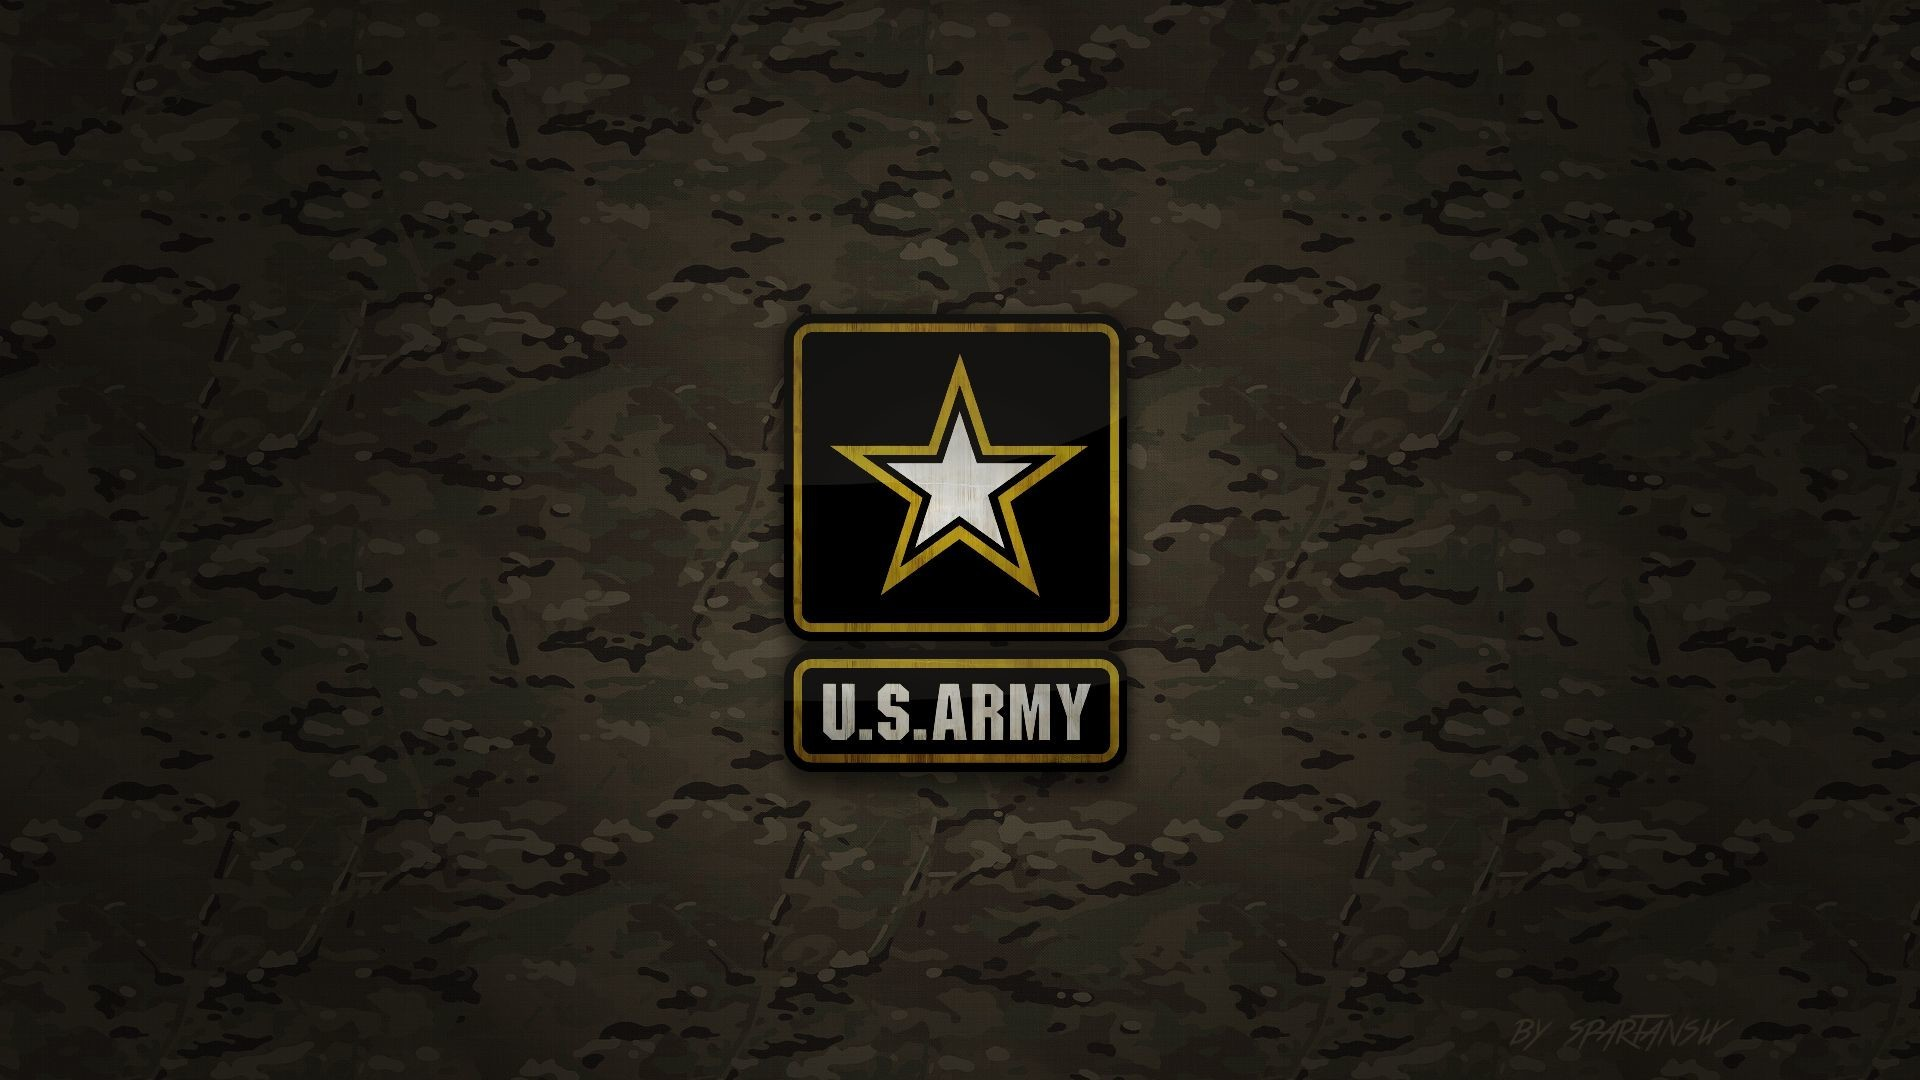 1920x1080  US Army Wallpaper 2182 - Amazing Wallpaperz